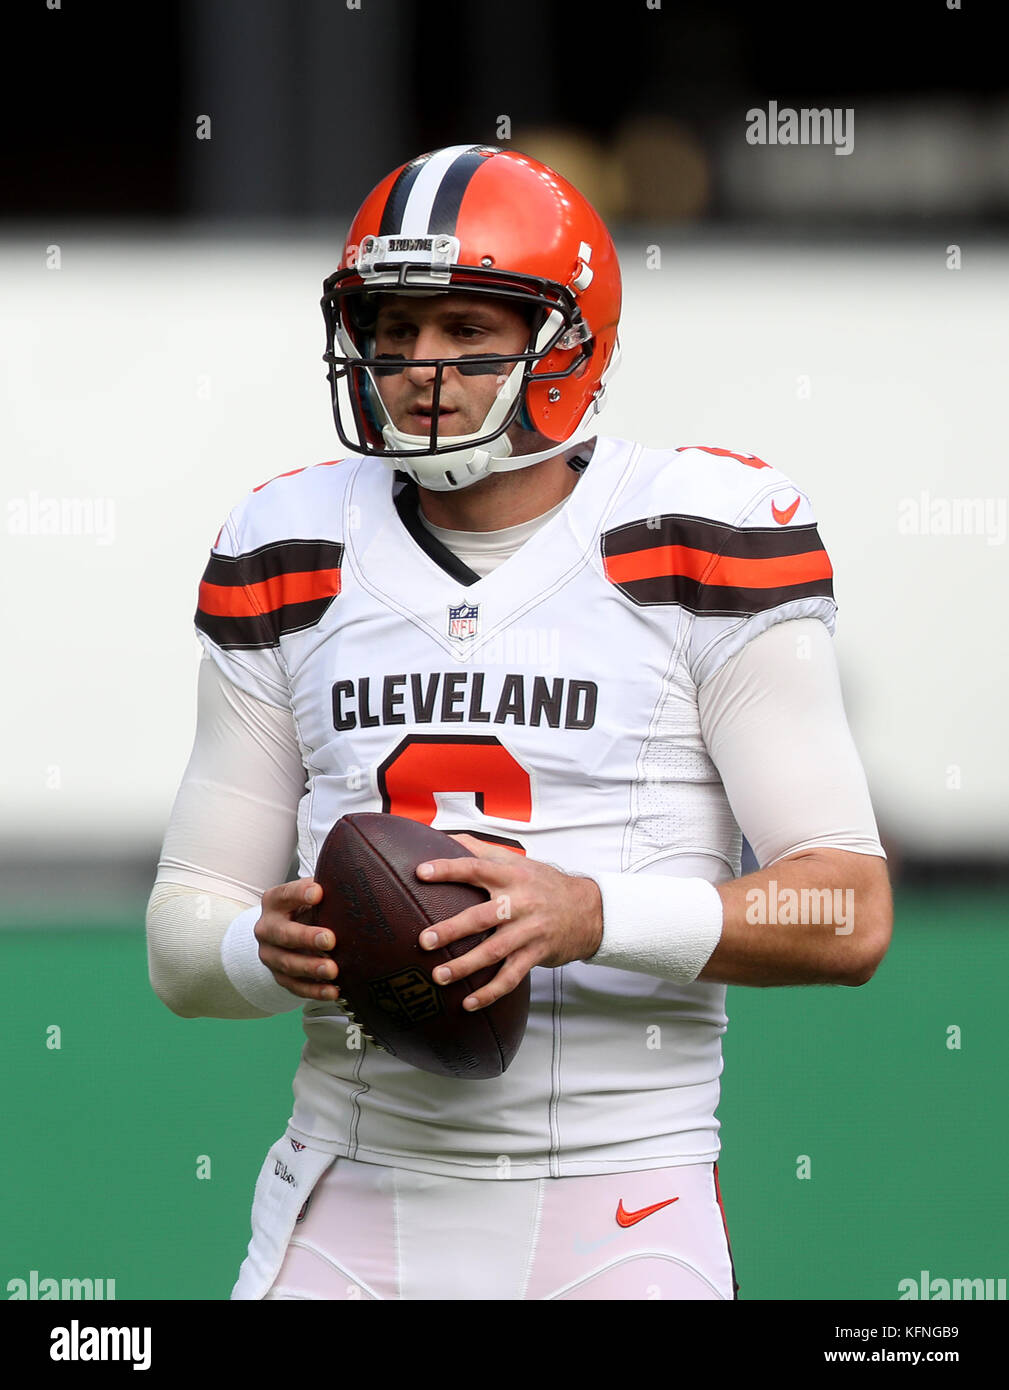 new concept aeaeb 23c4f Cleveland Browns' quarterback Cody Kessler during warm-up ...